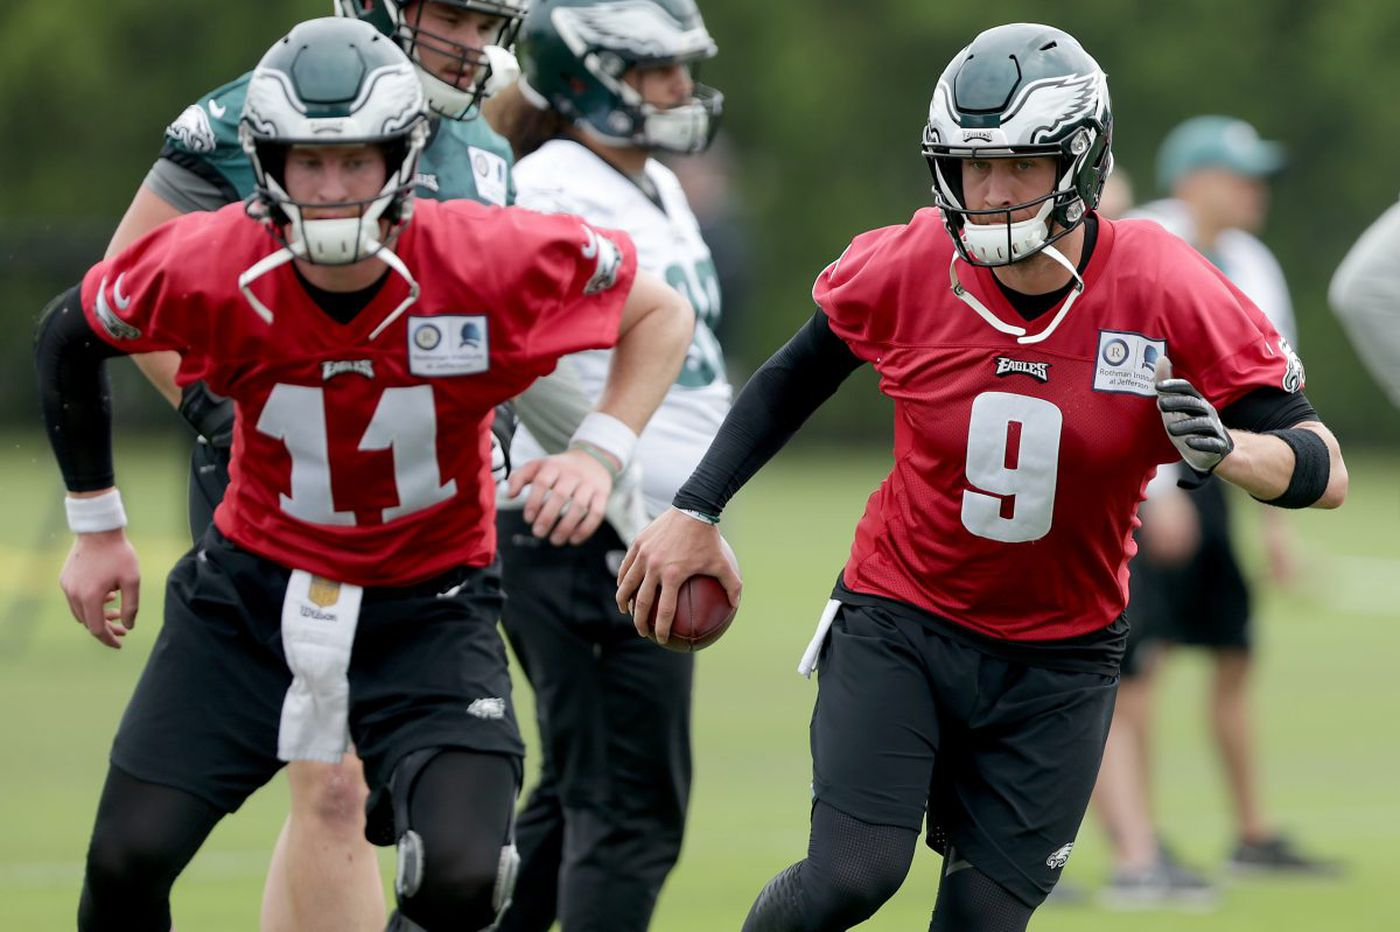 Eagles practice observations: Carson Wentz does more (again); Sidney Jones intercepts; De'Vante Bausby gets some looks